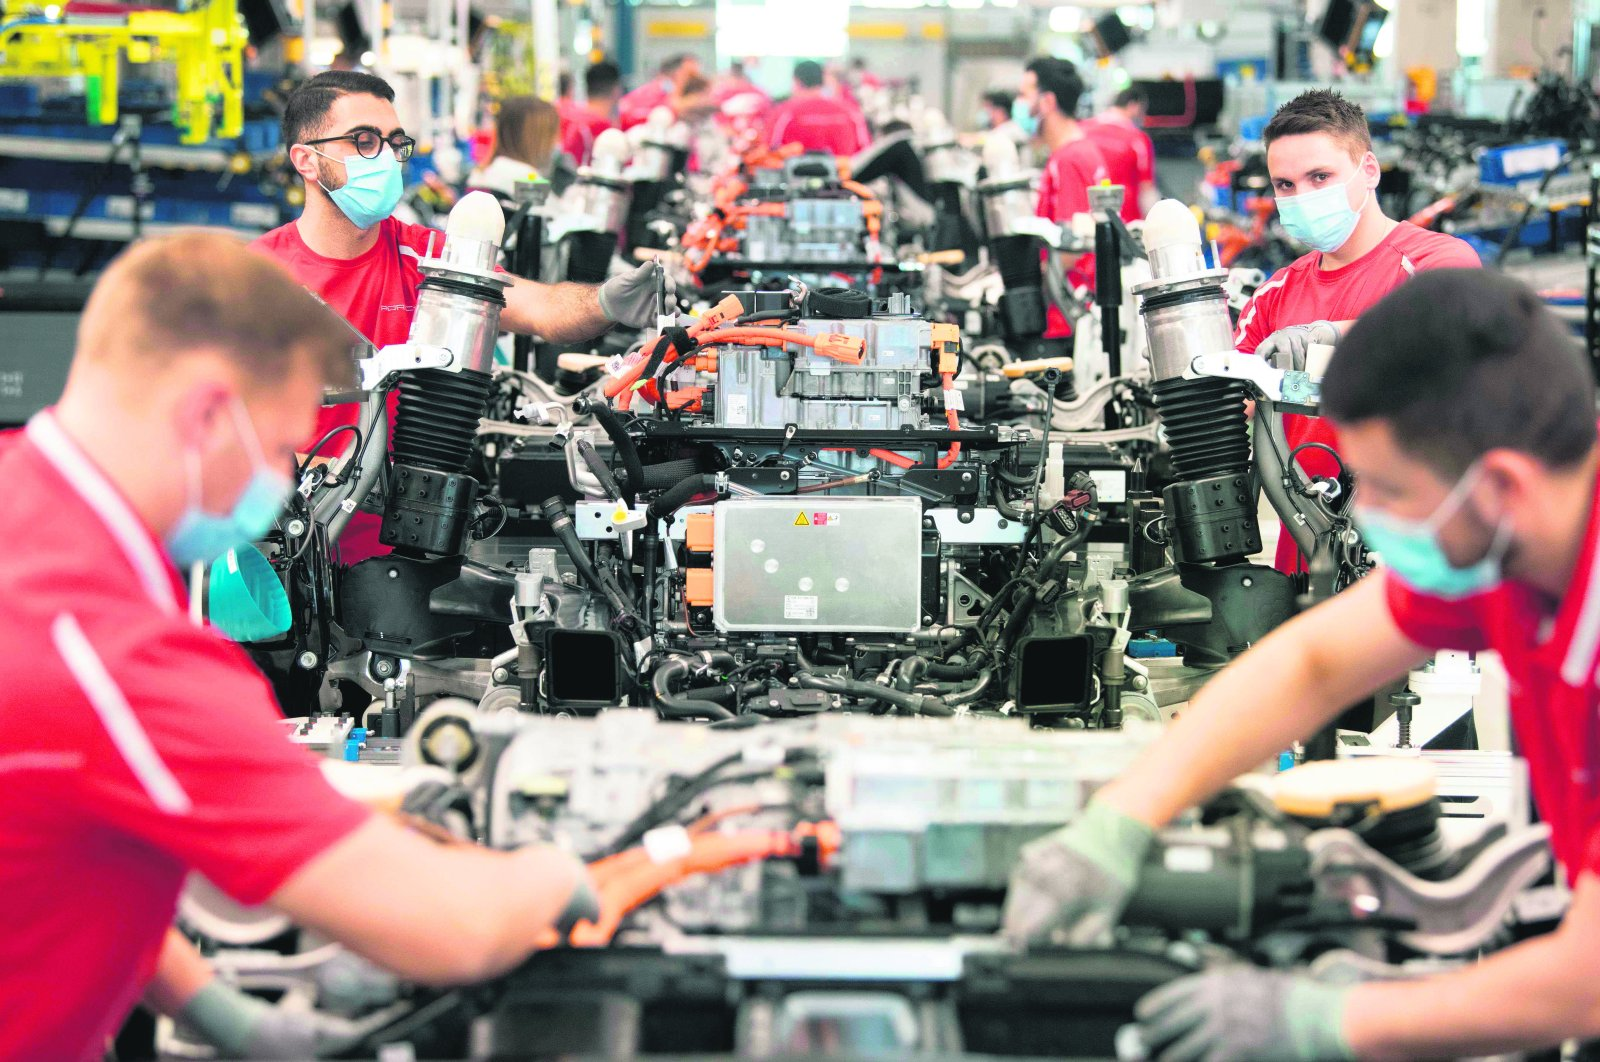 Employees of German car manufacturer Porsche wear face masks as they work on power trains for the Taycan full-electric sportscar at the production site in Stuttgart, southern Germany, on May 12, 2020. (AFP Photo)